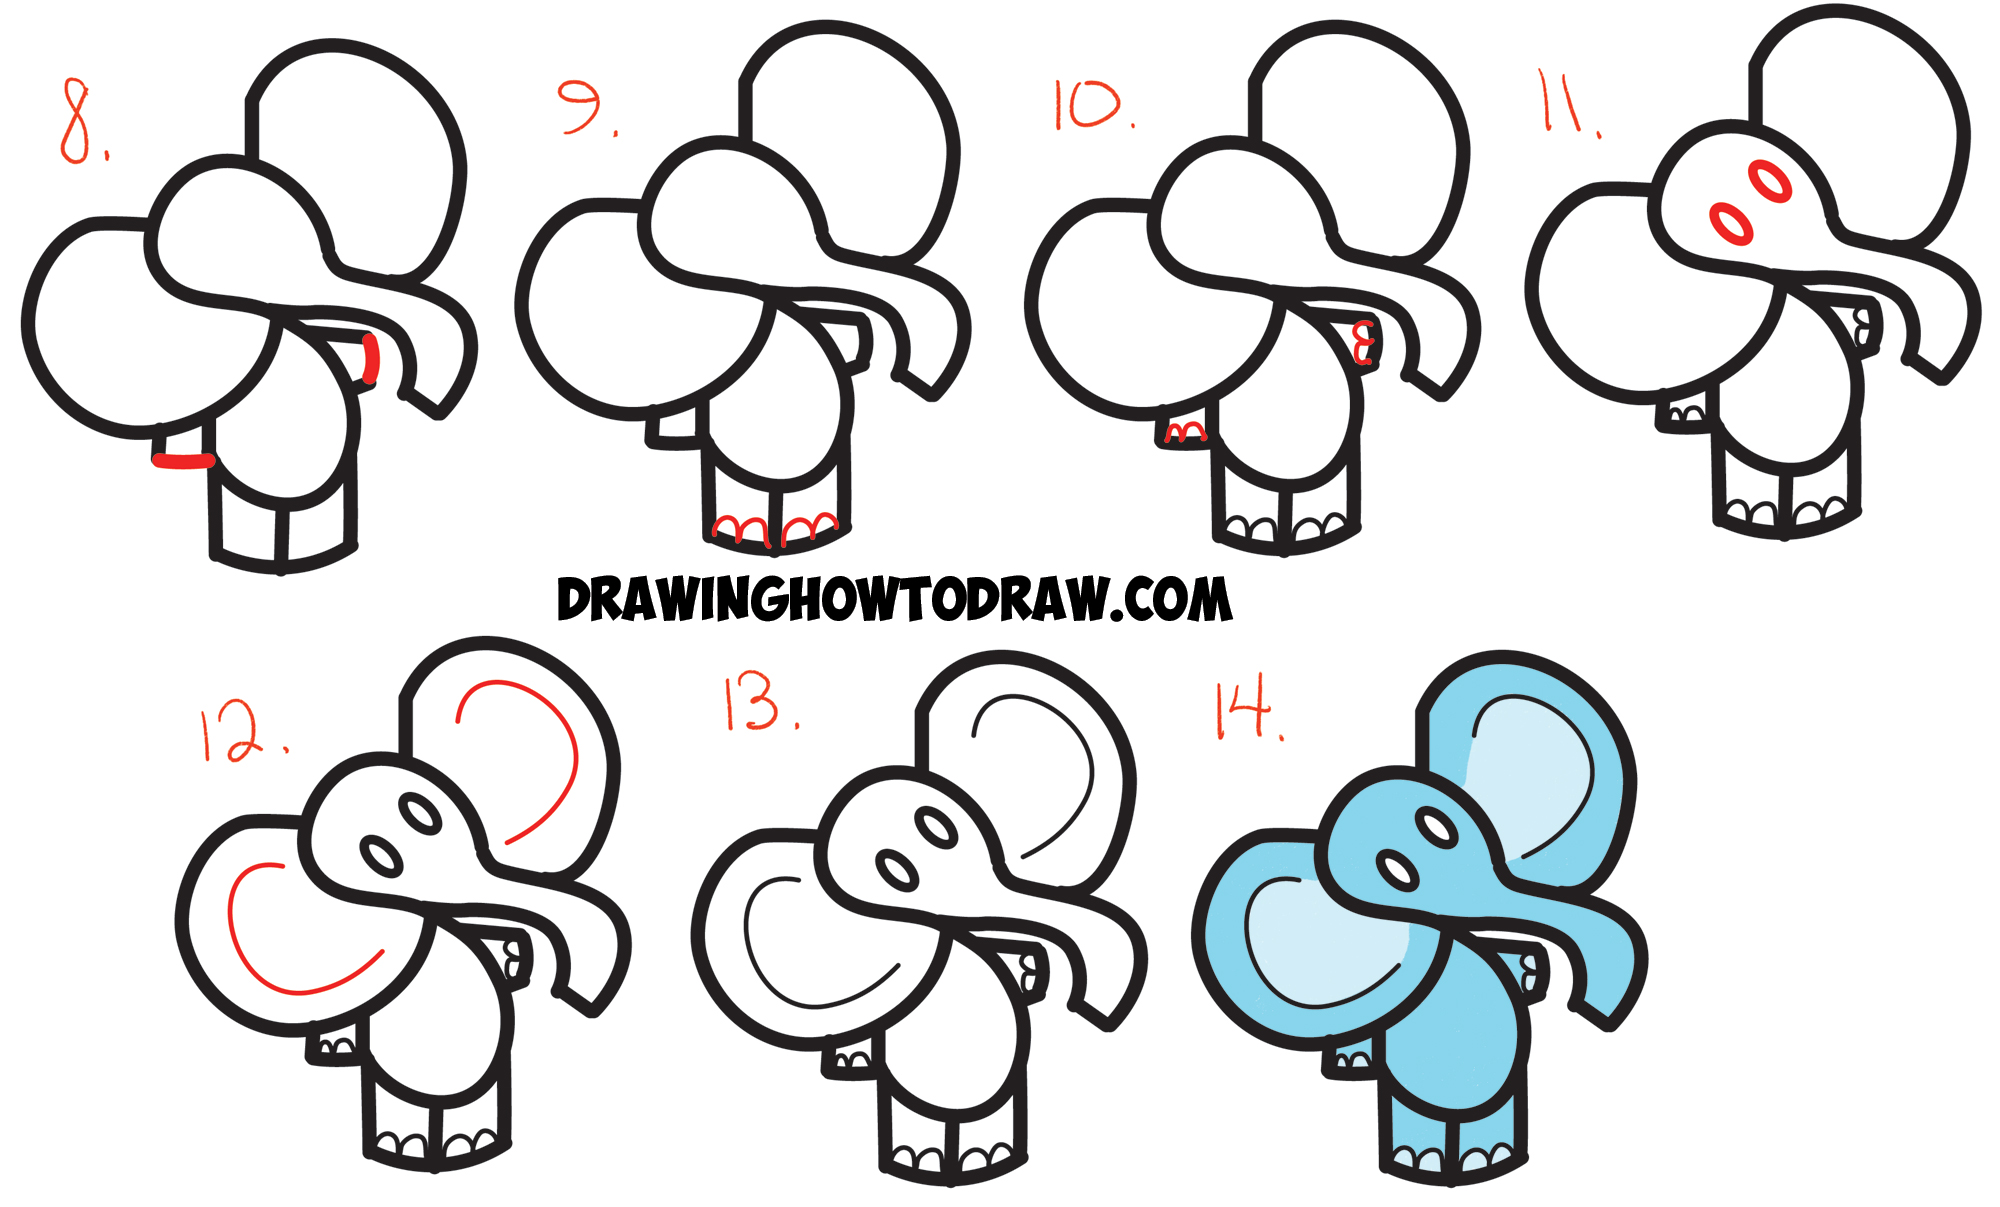 2000x1207 How To Draw Cartoon Elephant From The Dollar Sign